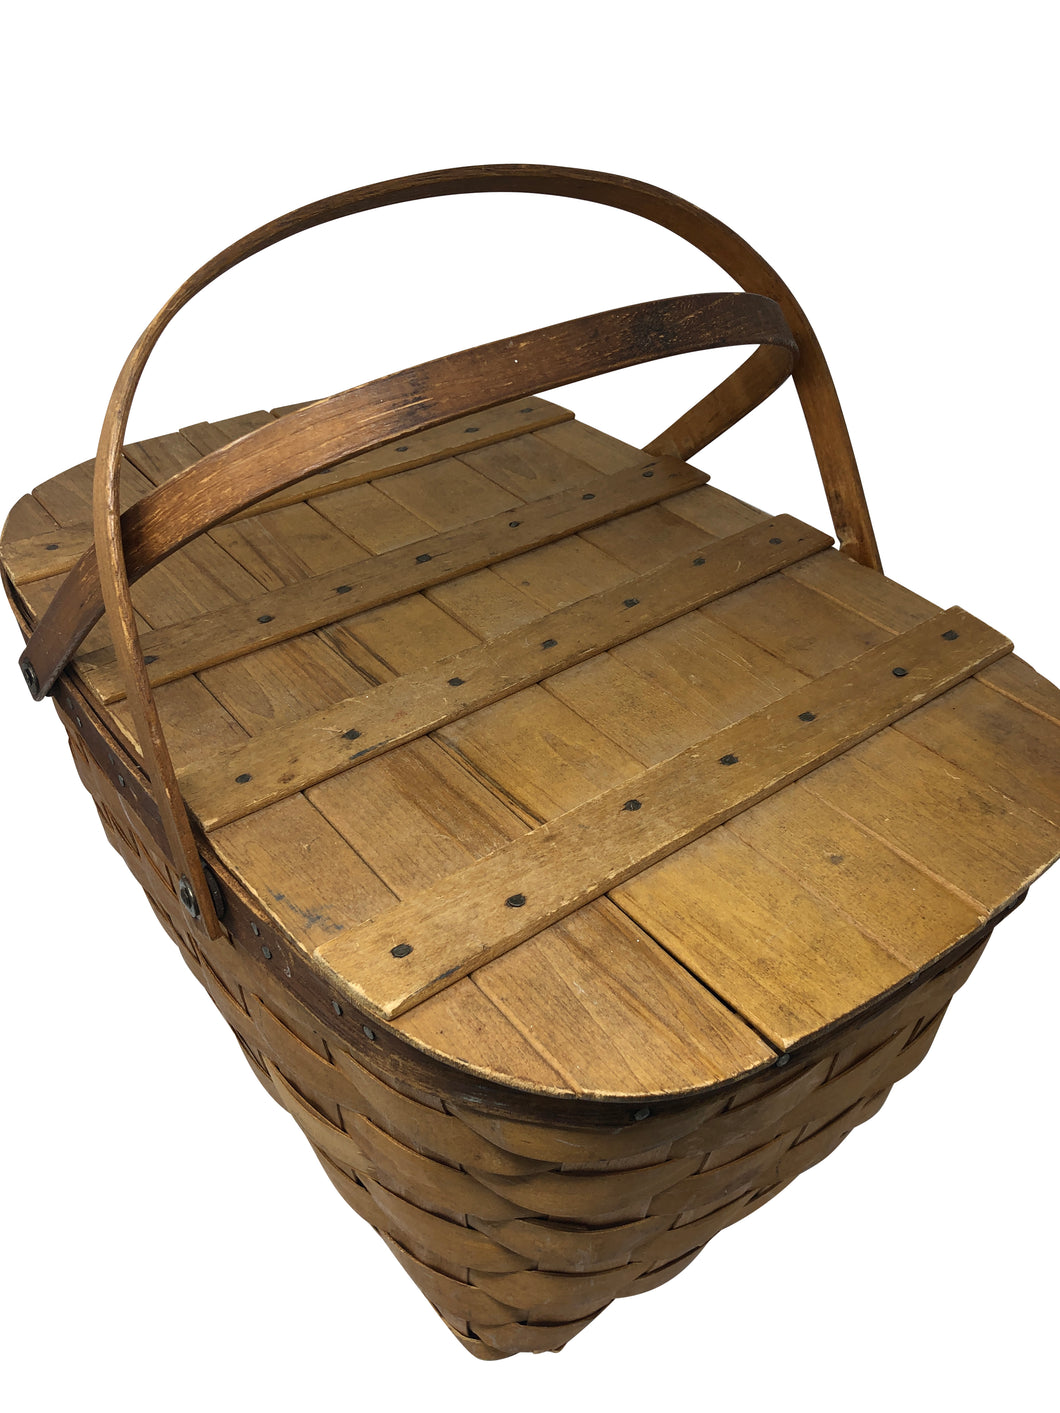 Woven Redman Picnic Basket with Handles